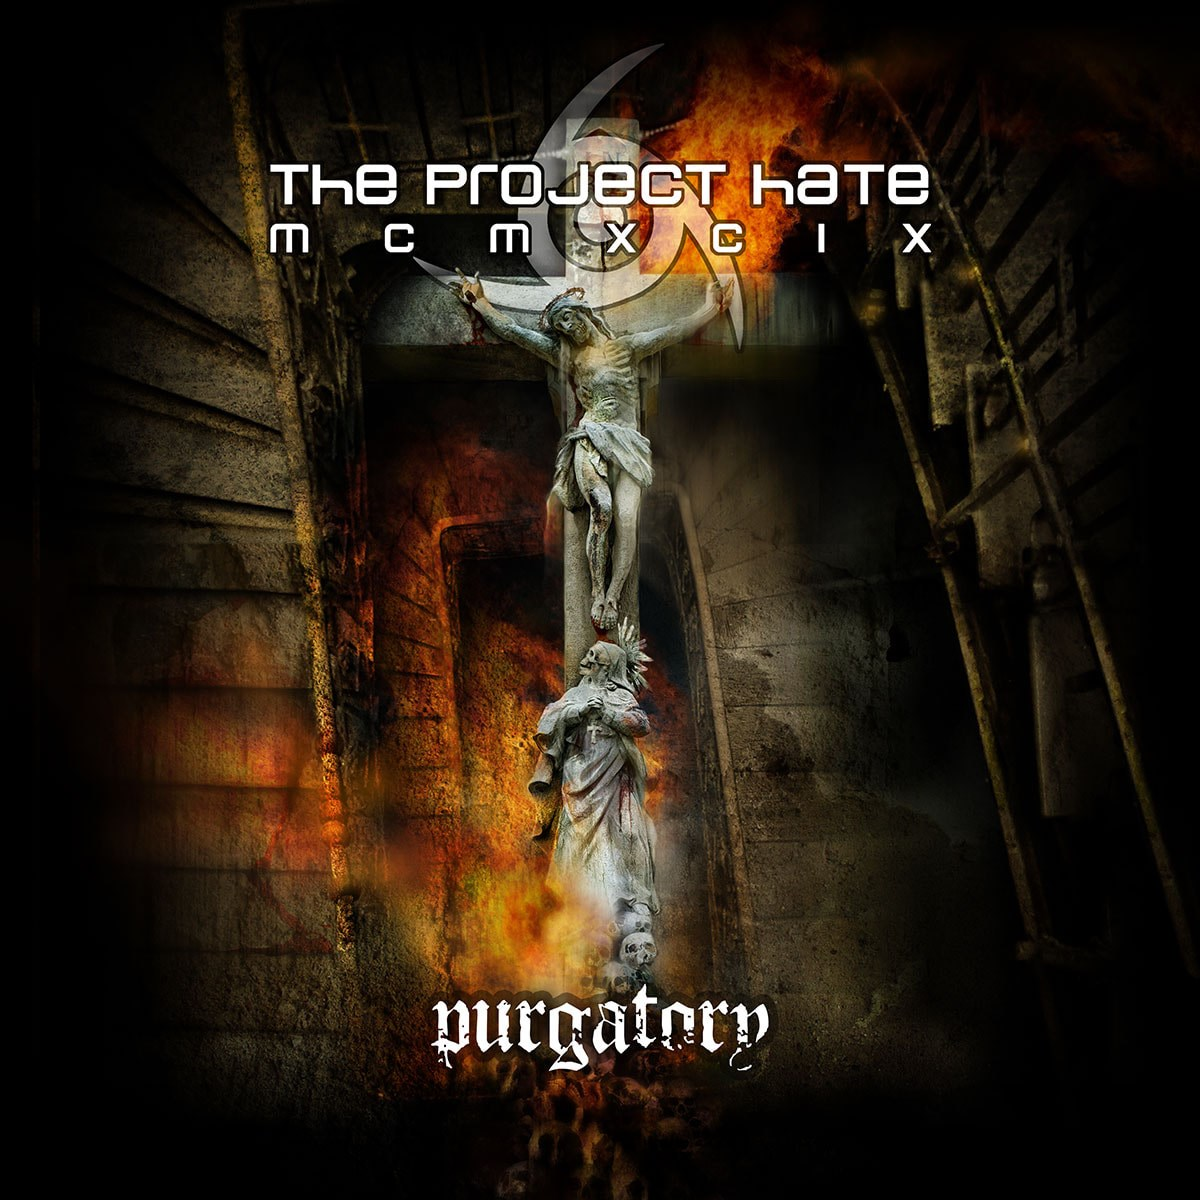 The Project Hate MCMXCIX - Purgatory